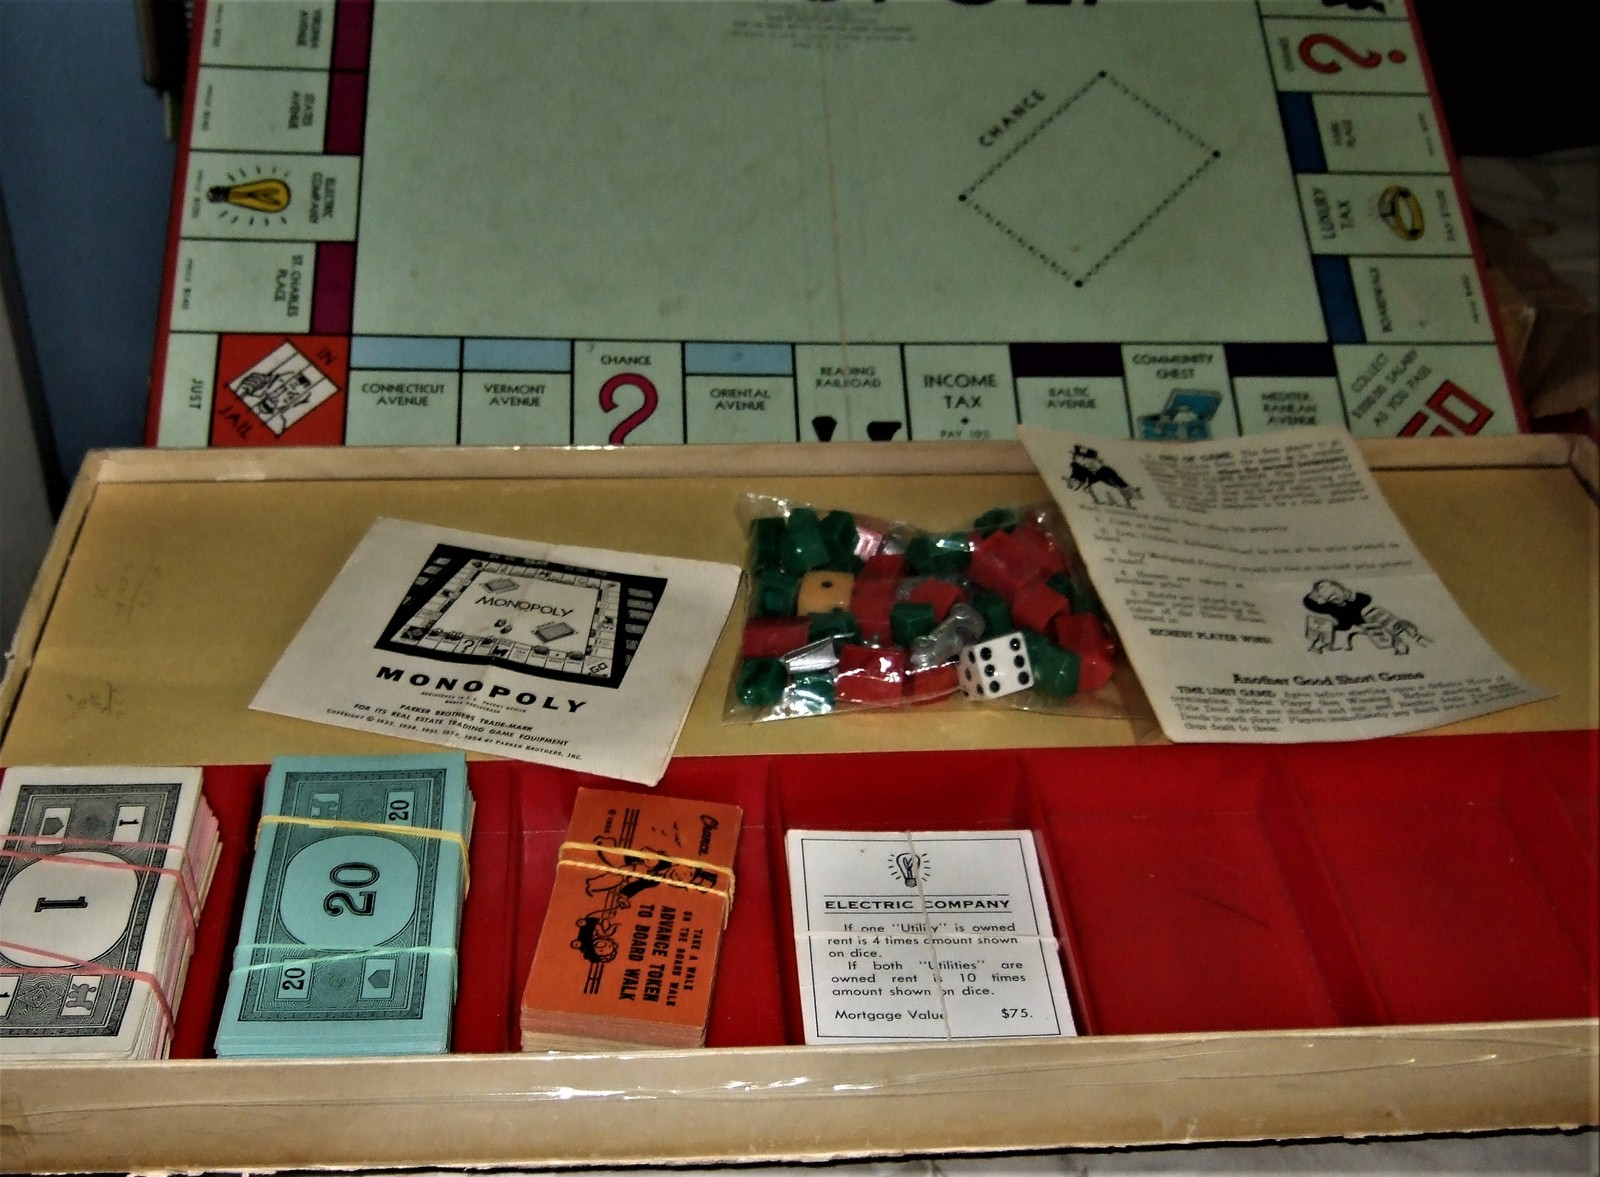 MONOPOLY GAME: Original Box, Game Board, Cards, Money VINTAGE 1957 PB